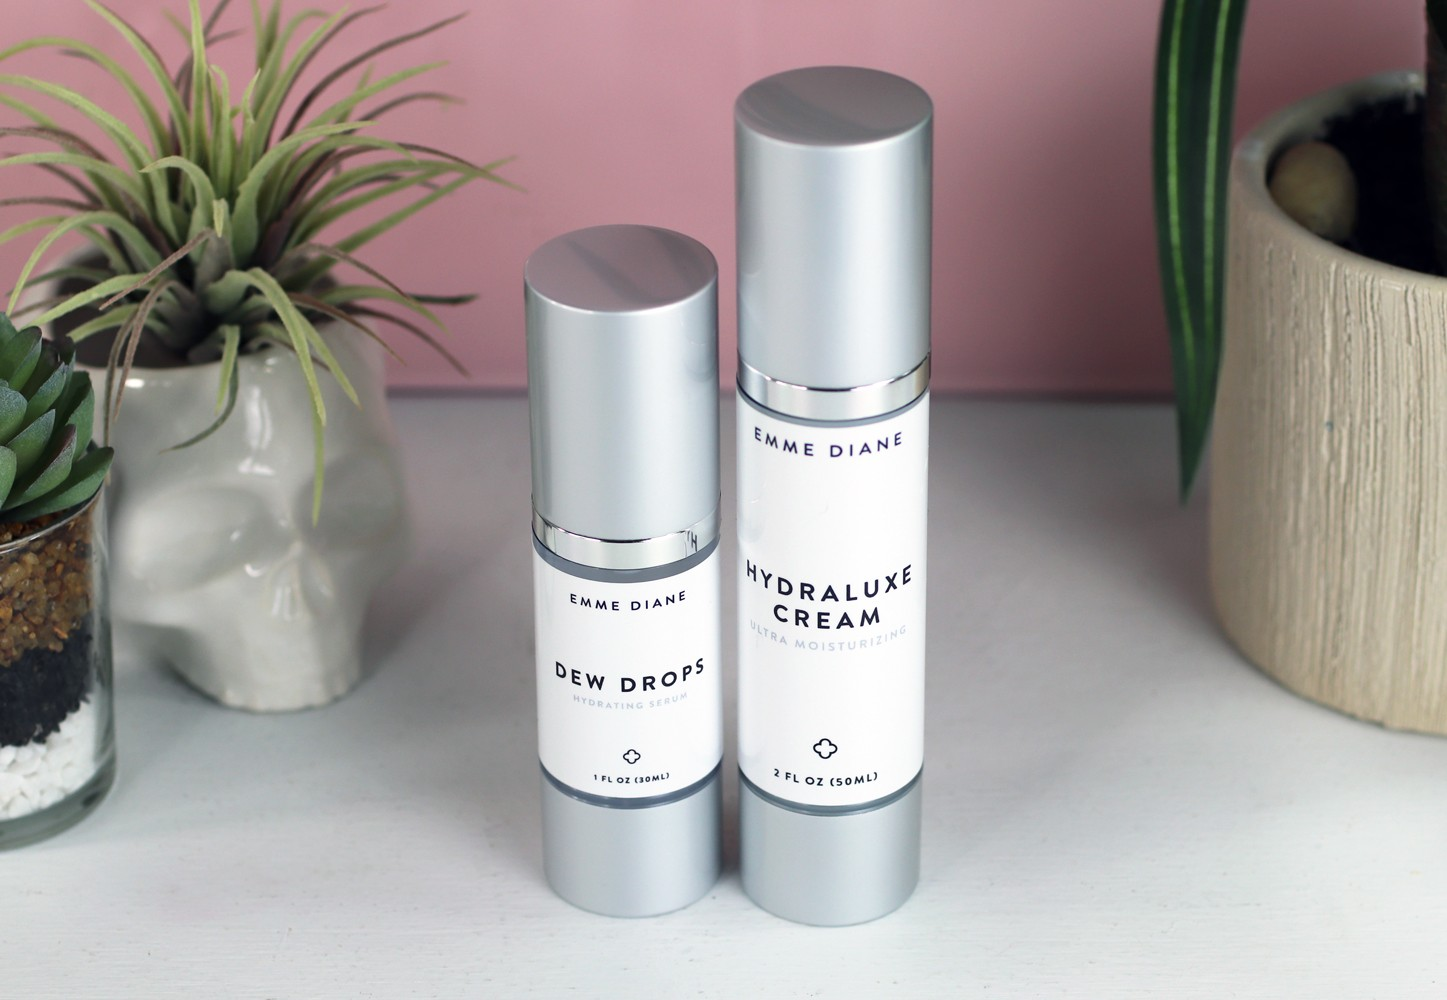 Emme Diane Dew Drops and Hydraluxe Cream - perfect for dry skin with acne - Products You Need For Dry Acne Prone Skin by popular LA cruelty free beauty blogger My Beauty Bunny